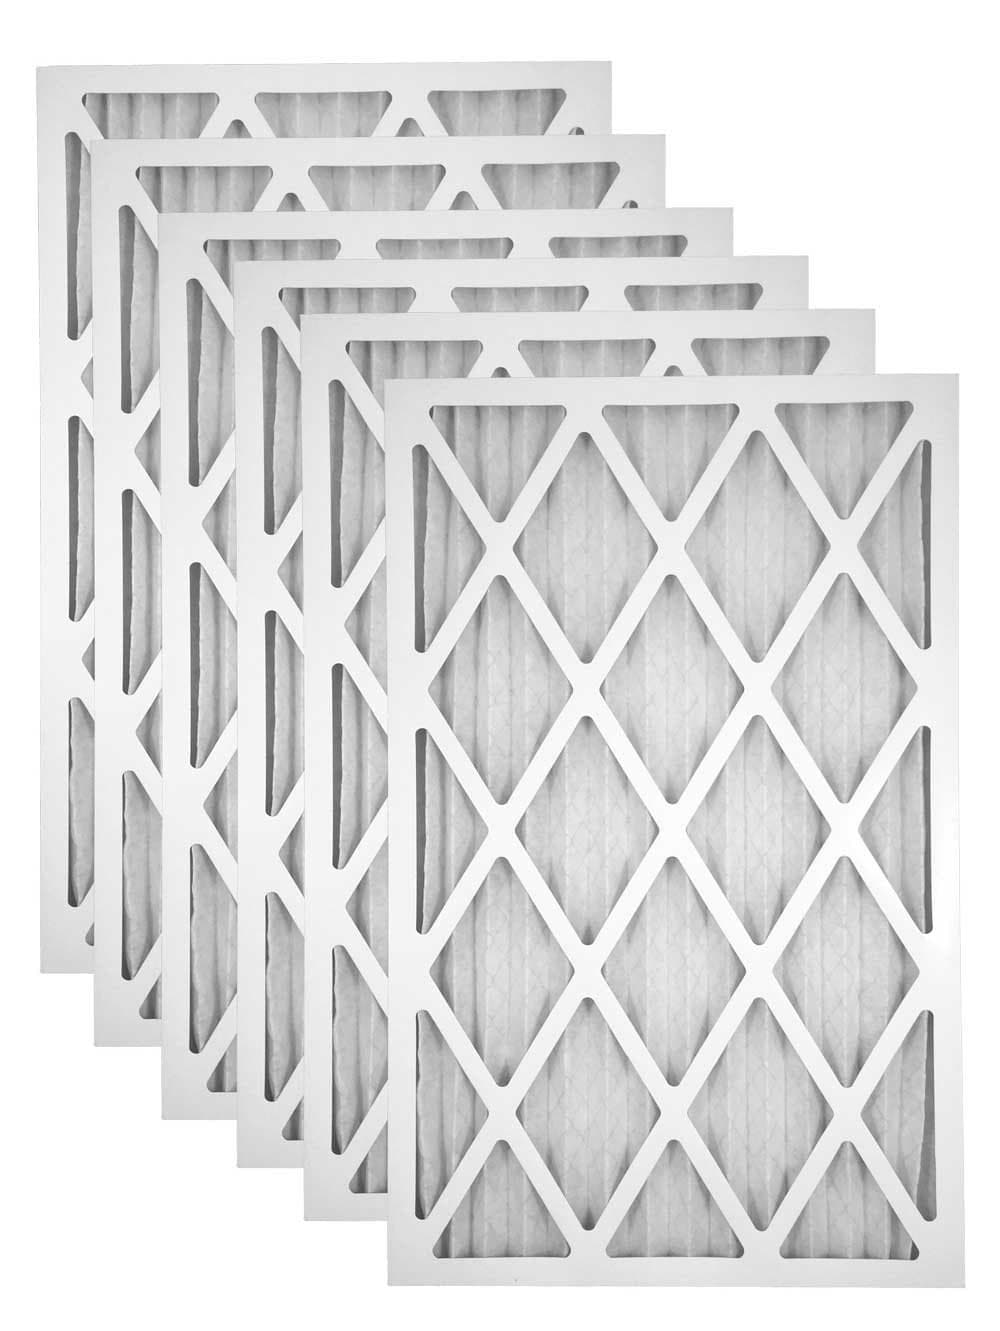 18x24x1 Merv 8 Pleated AC Furnace Filter - Case of 6 by Atomic Filters